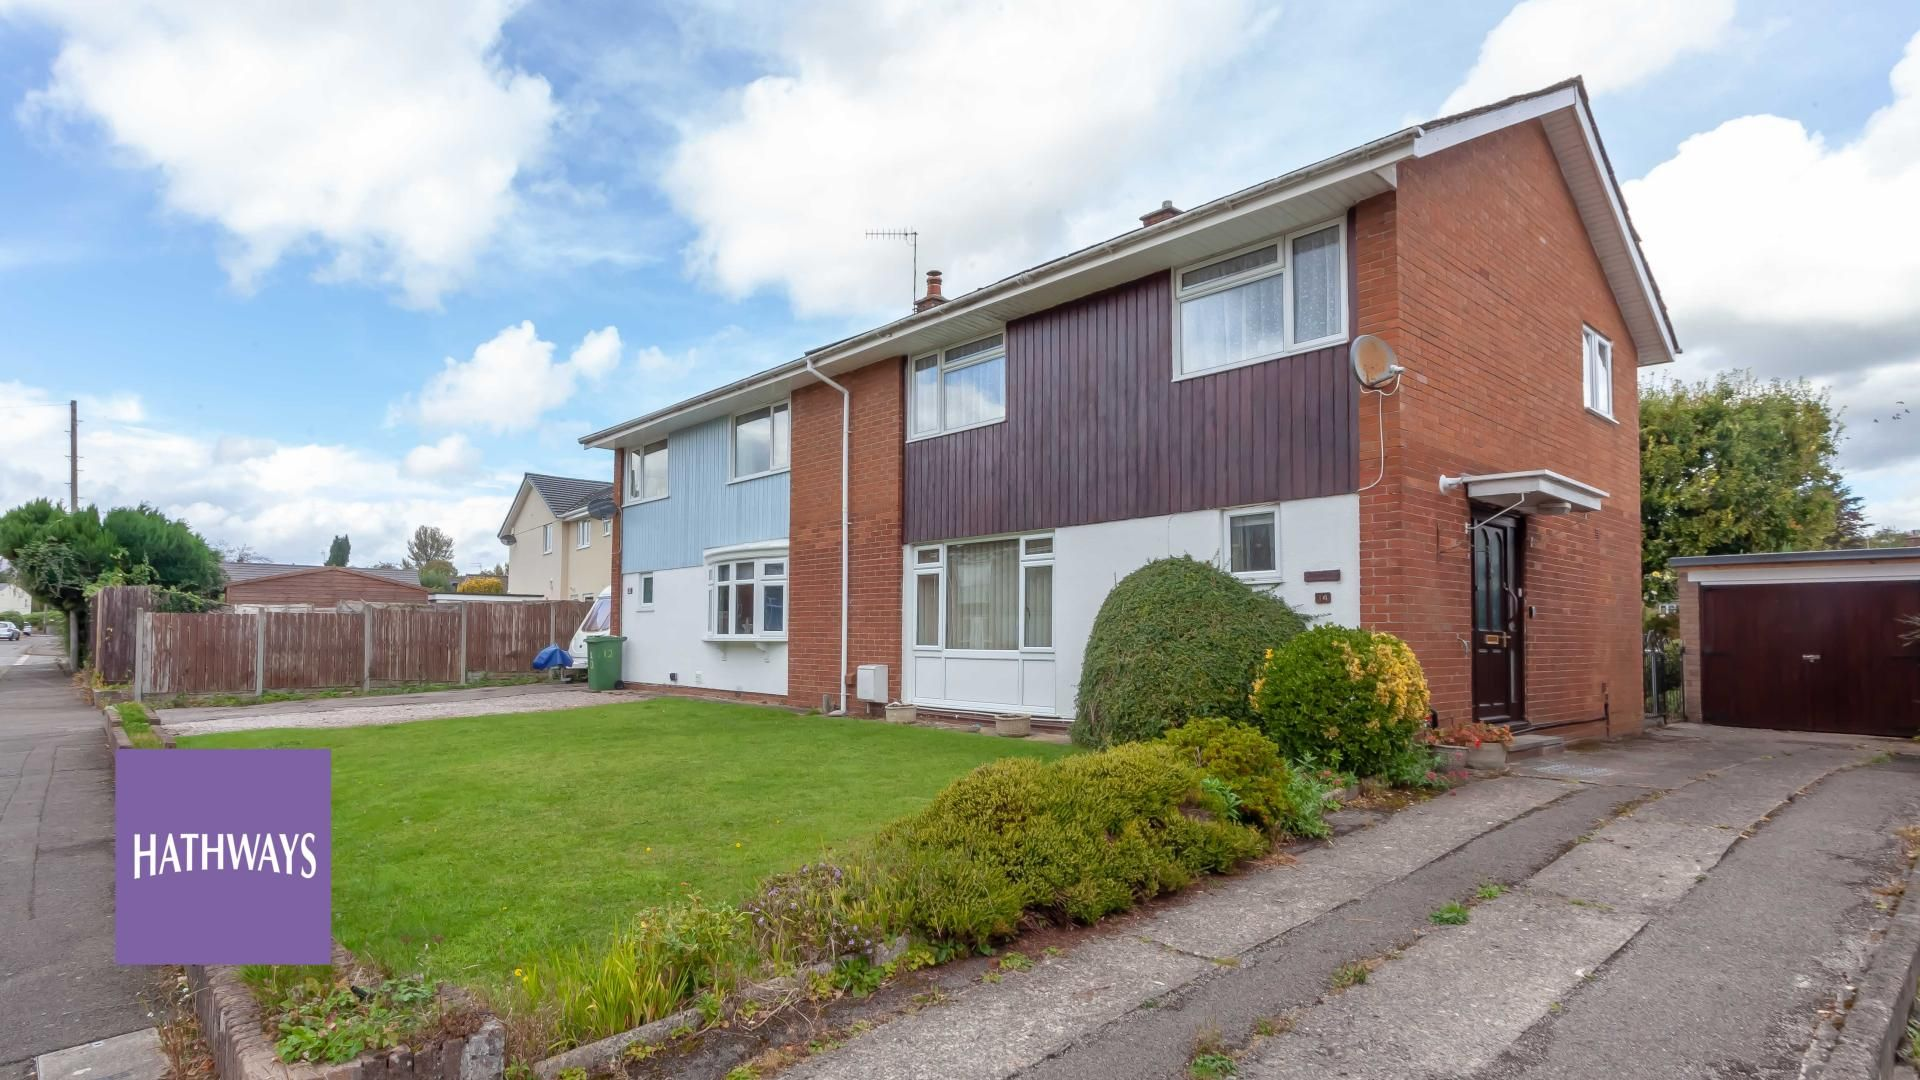 3 bed house for sale in Hafod Road, NP18